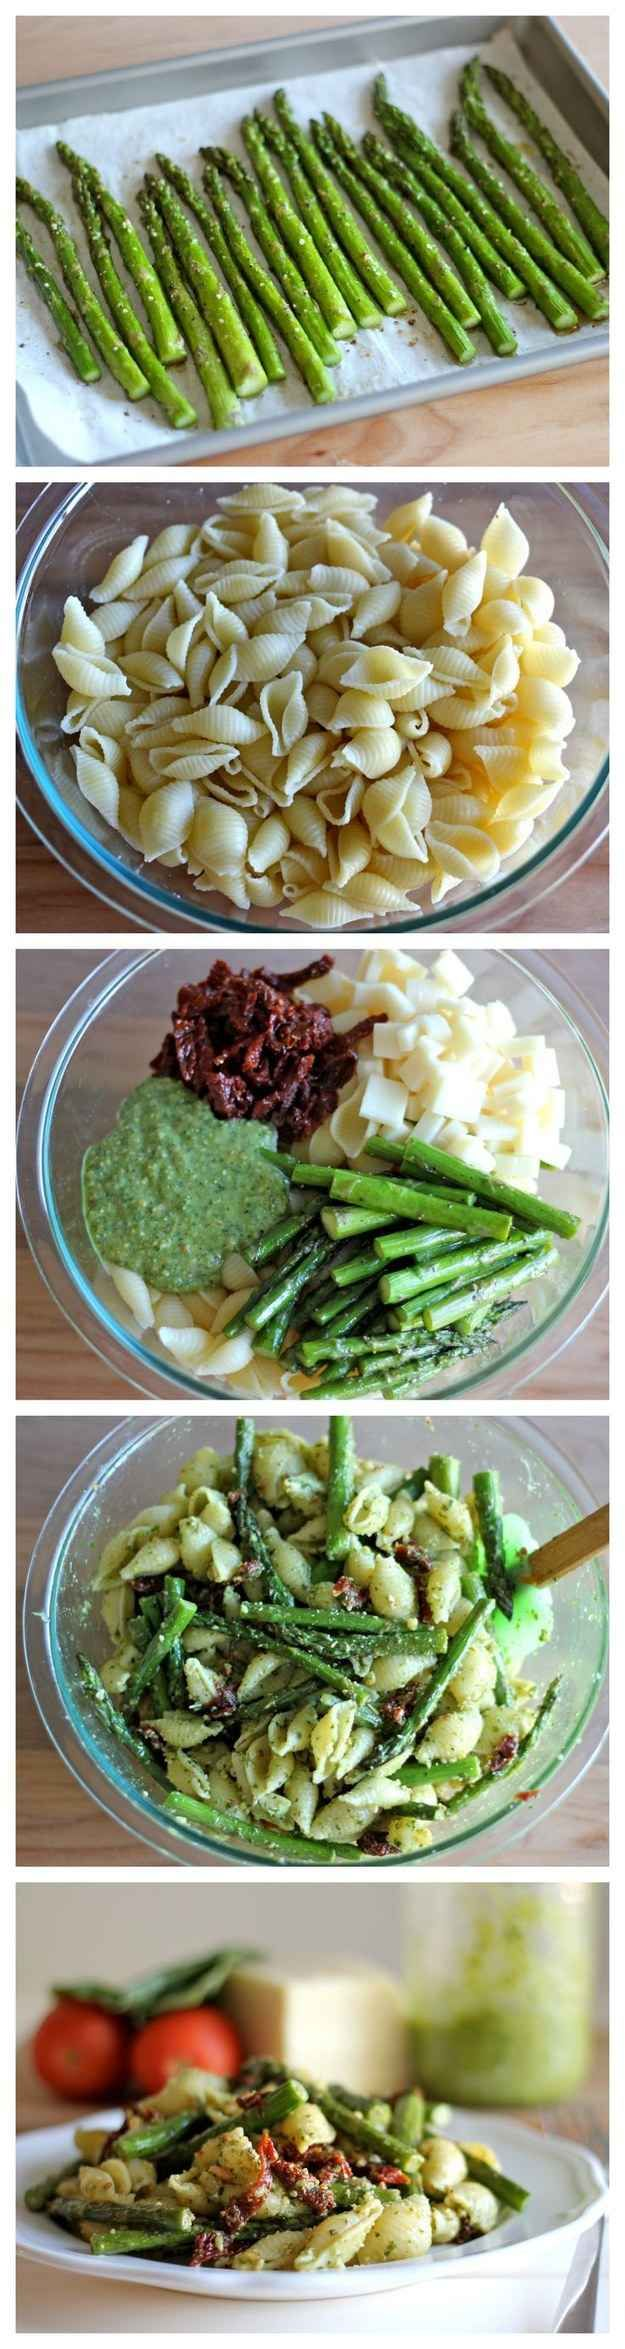 Pesto Pasta with Sundried Tomatoes and Roasted Asparagus | 7 Quick Dinners To Make This Week